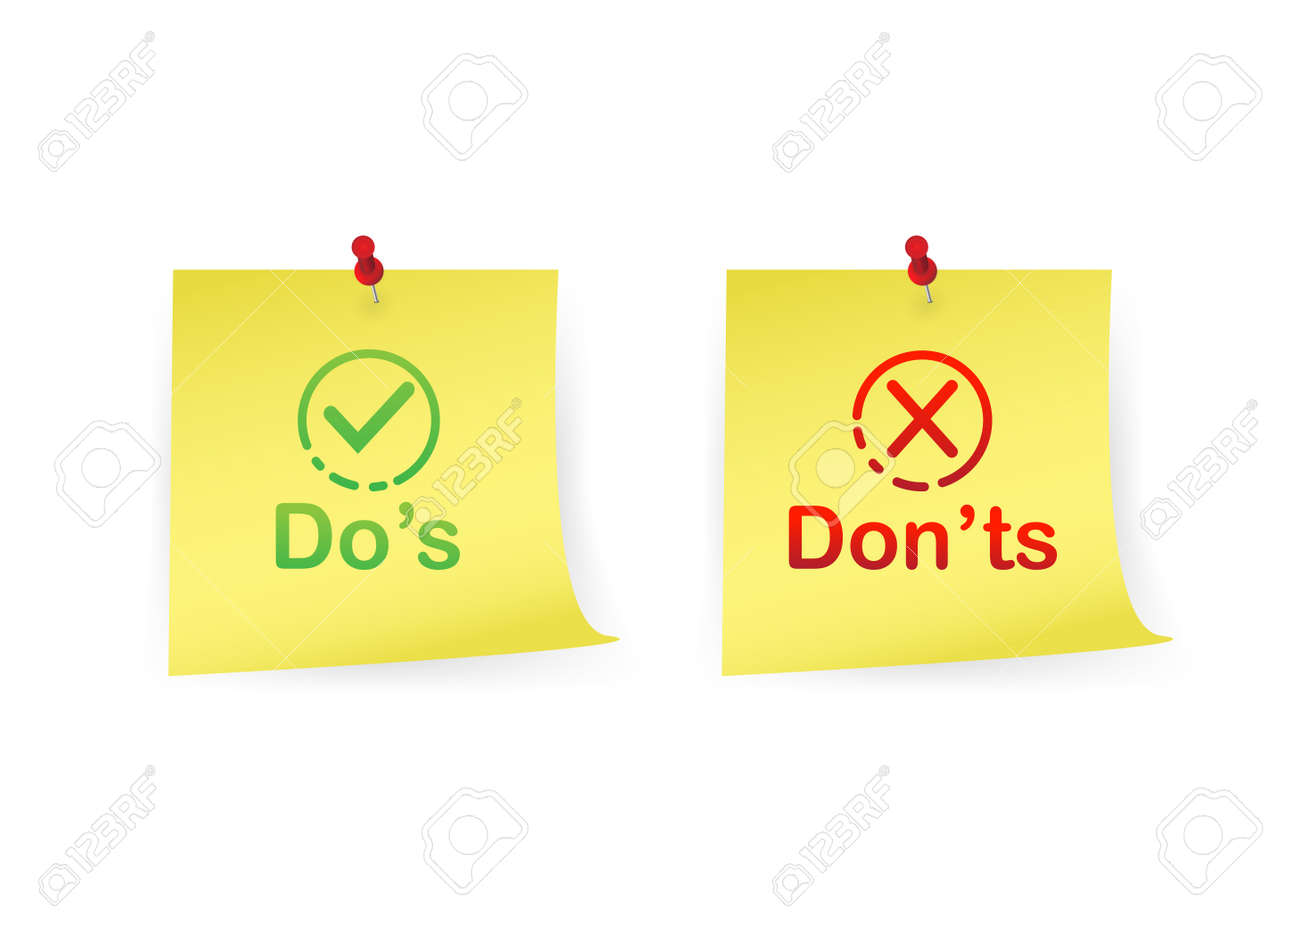 Do's and Don'ts on note sticks illustration isolated on white background - 155707861